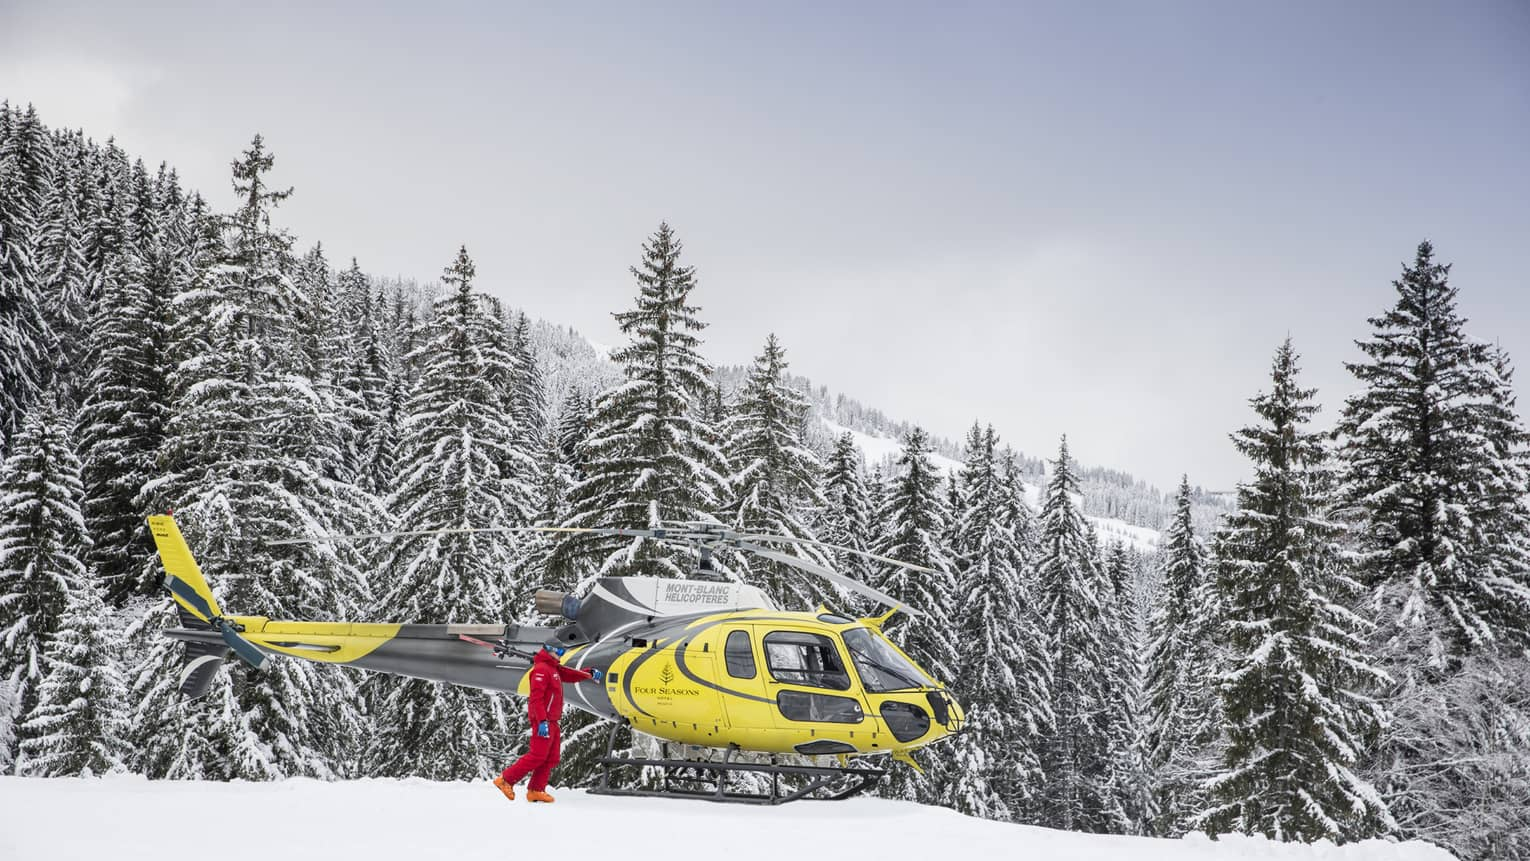 Skier dressed in red, holding skis, beside yellow helicopter atop snow-covered mountains and before a snow-covered evergreen forest